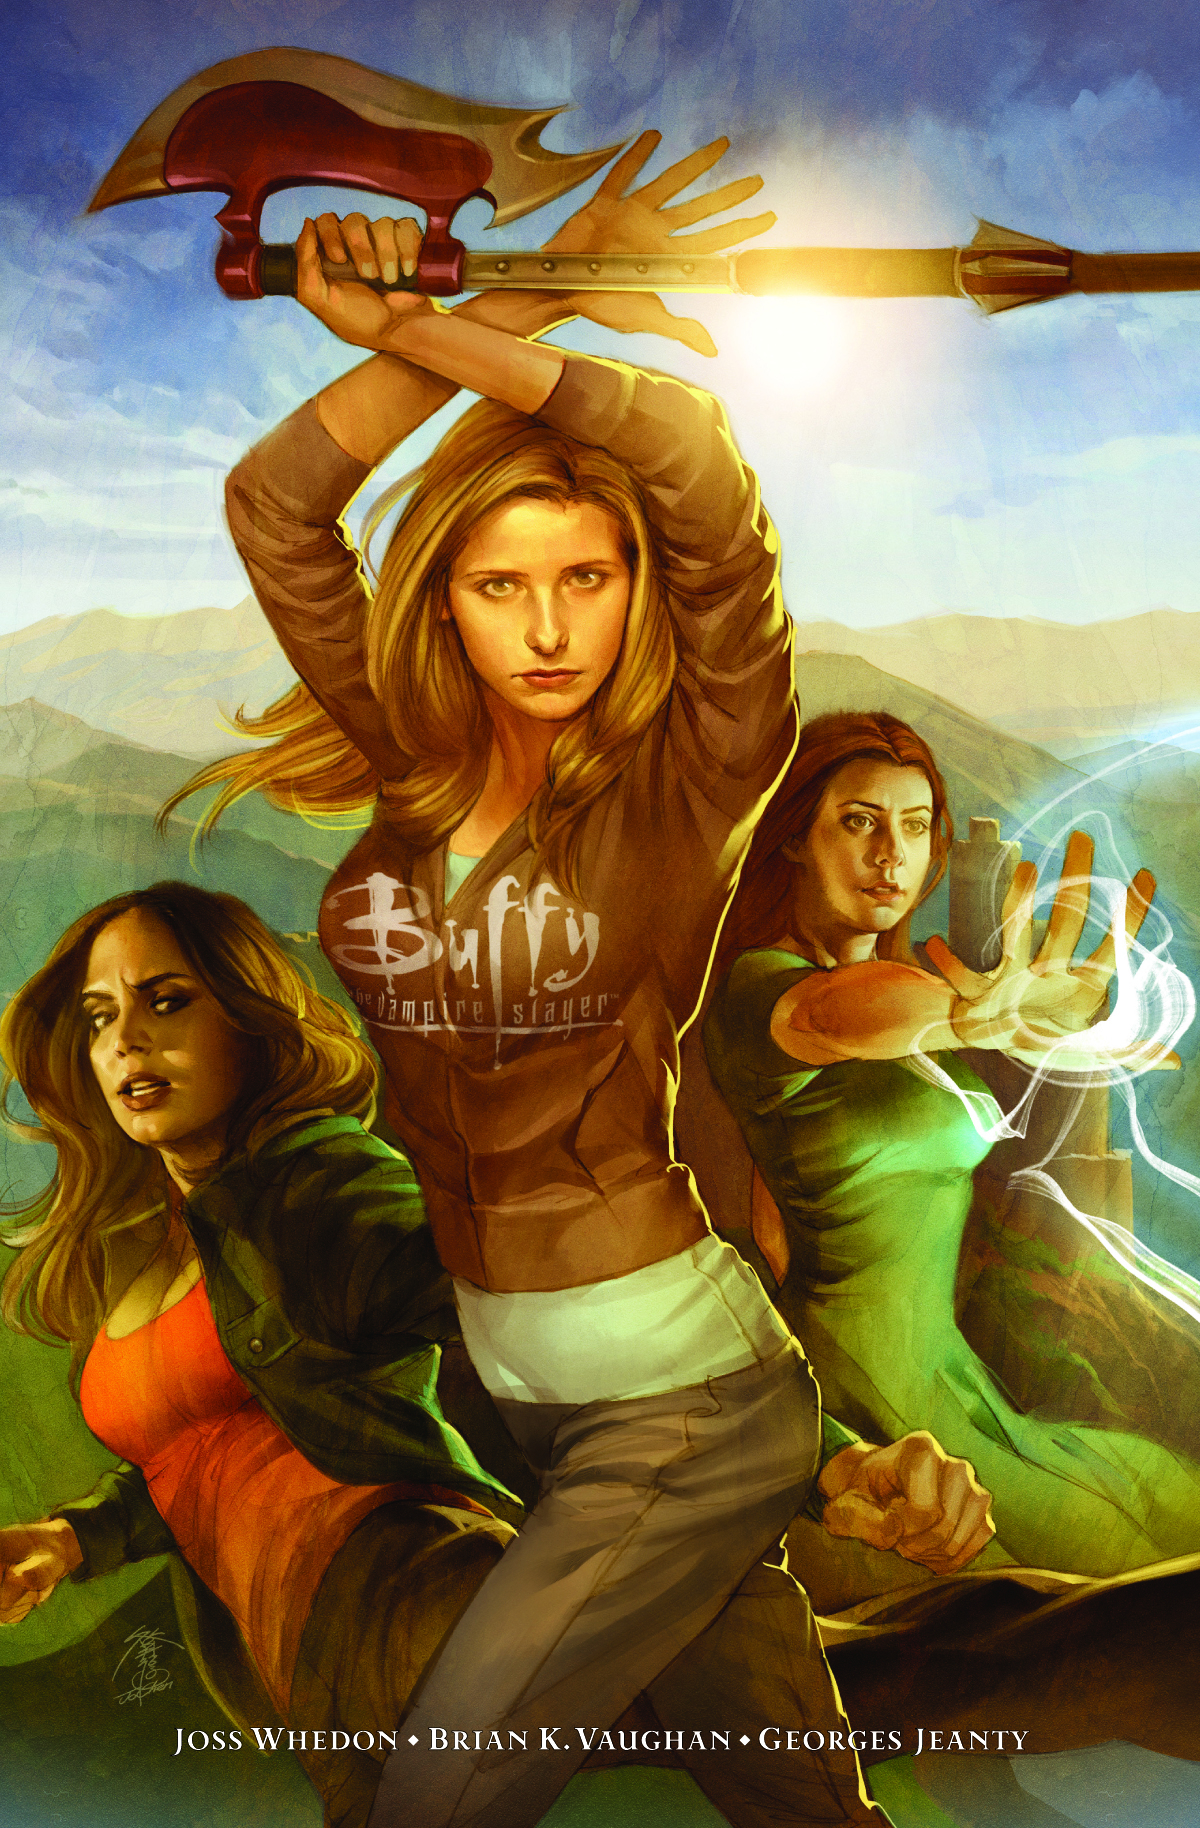 BTVS SEASON 8 LIBRARY HC VOL 01 LONG WAY HOME